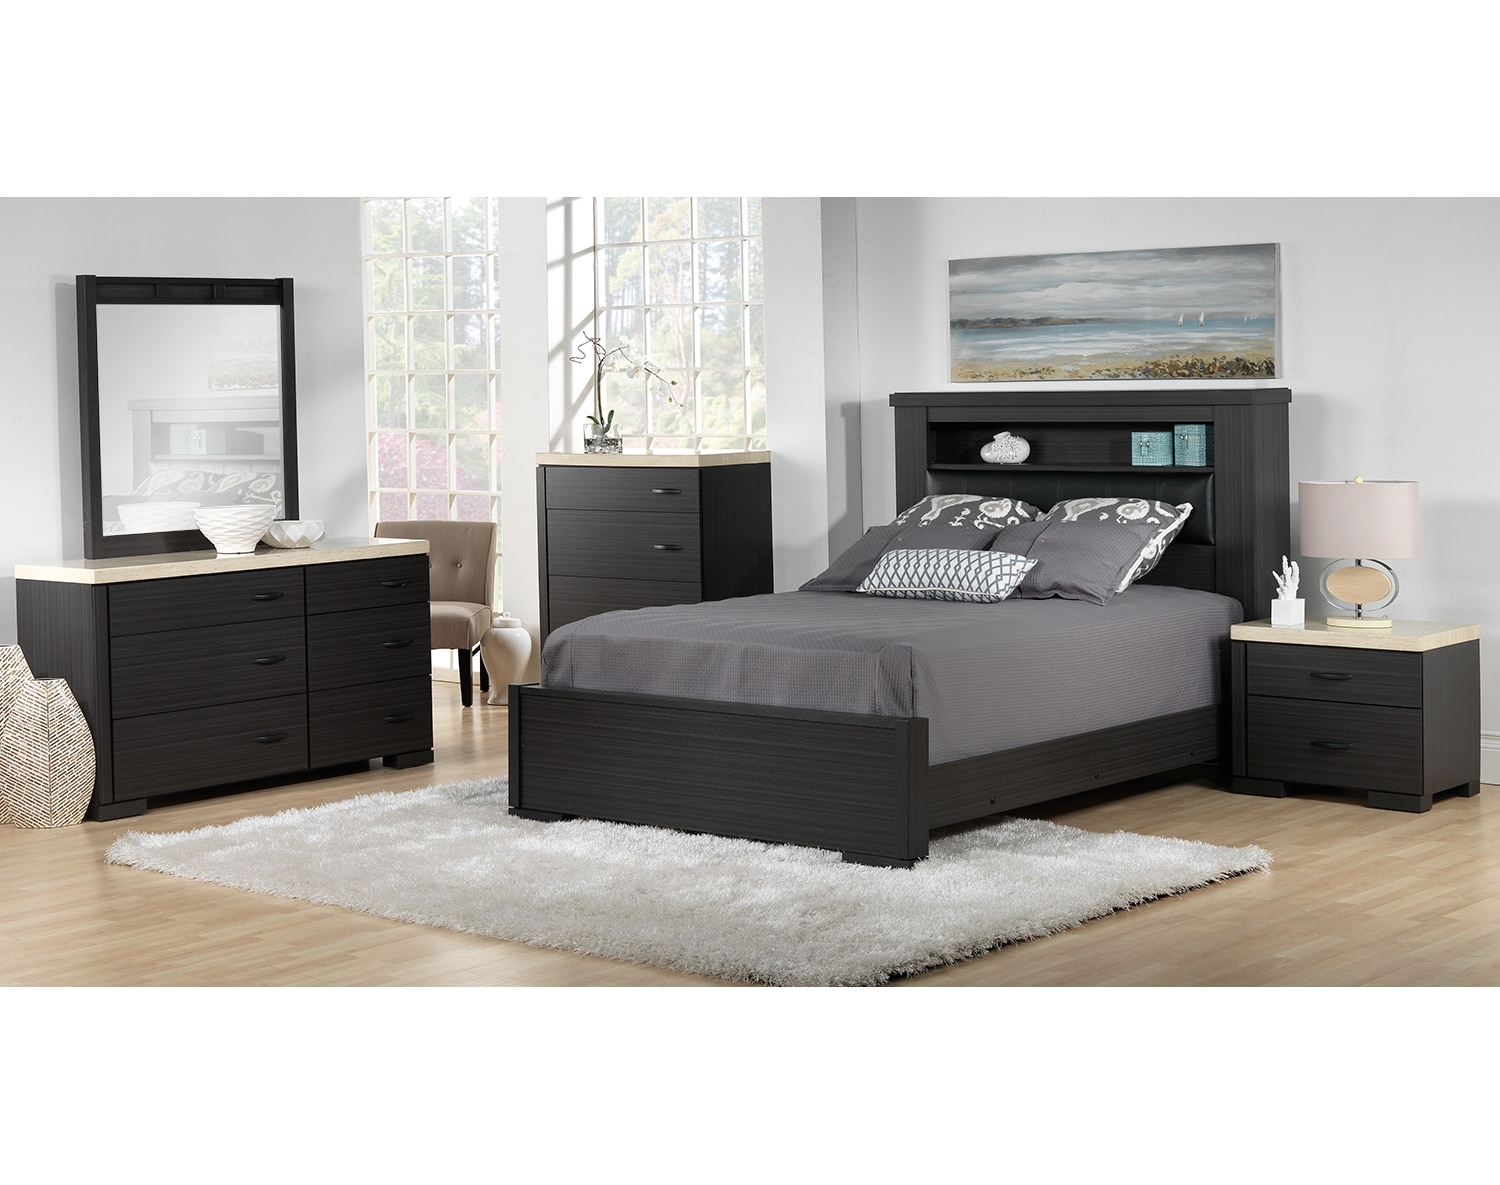 Santee 5-Piece King Bedroom Set - Charcoal & White